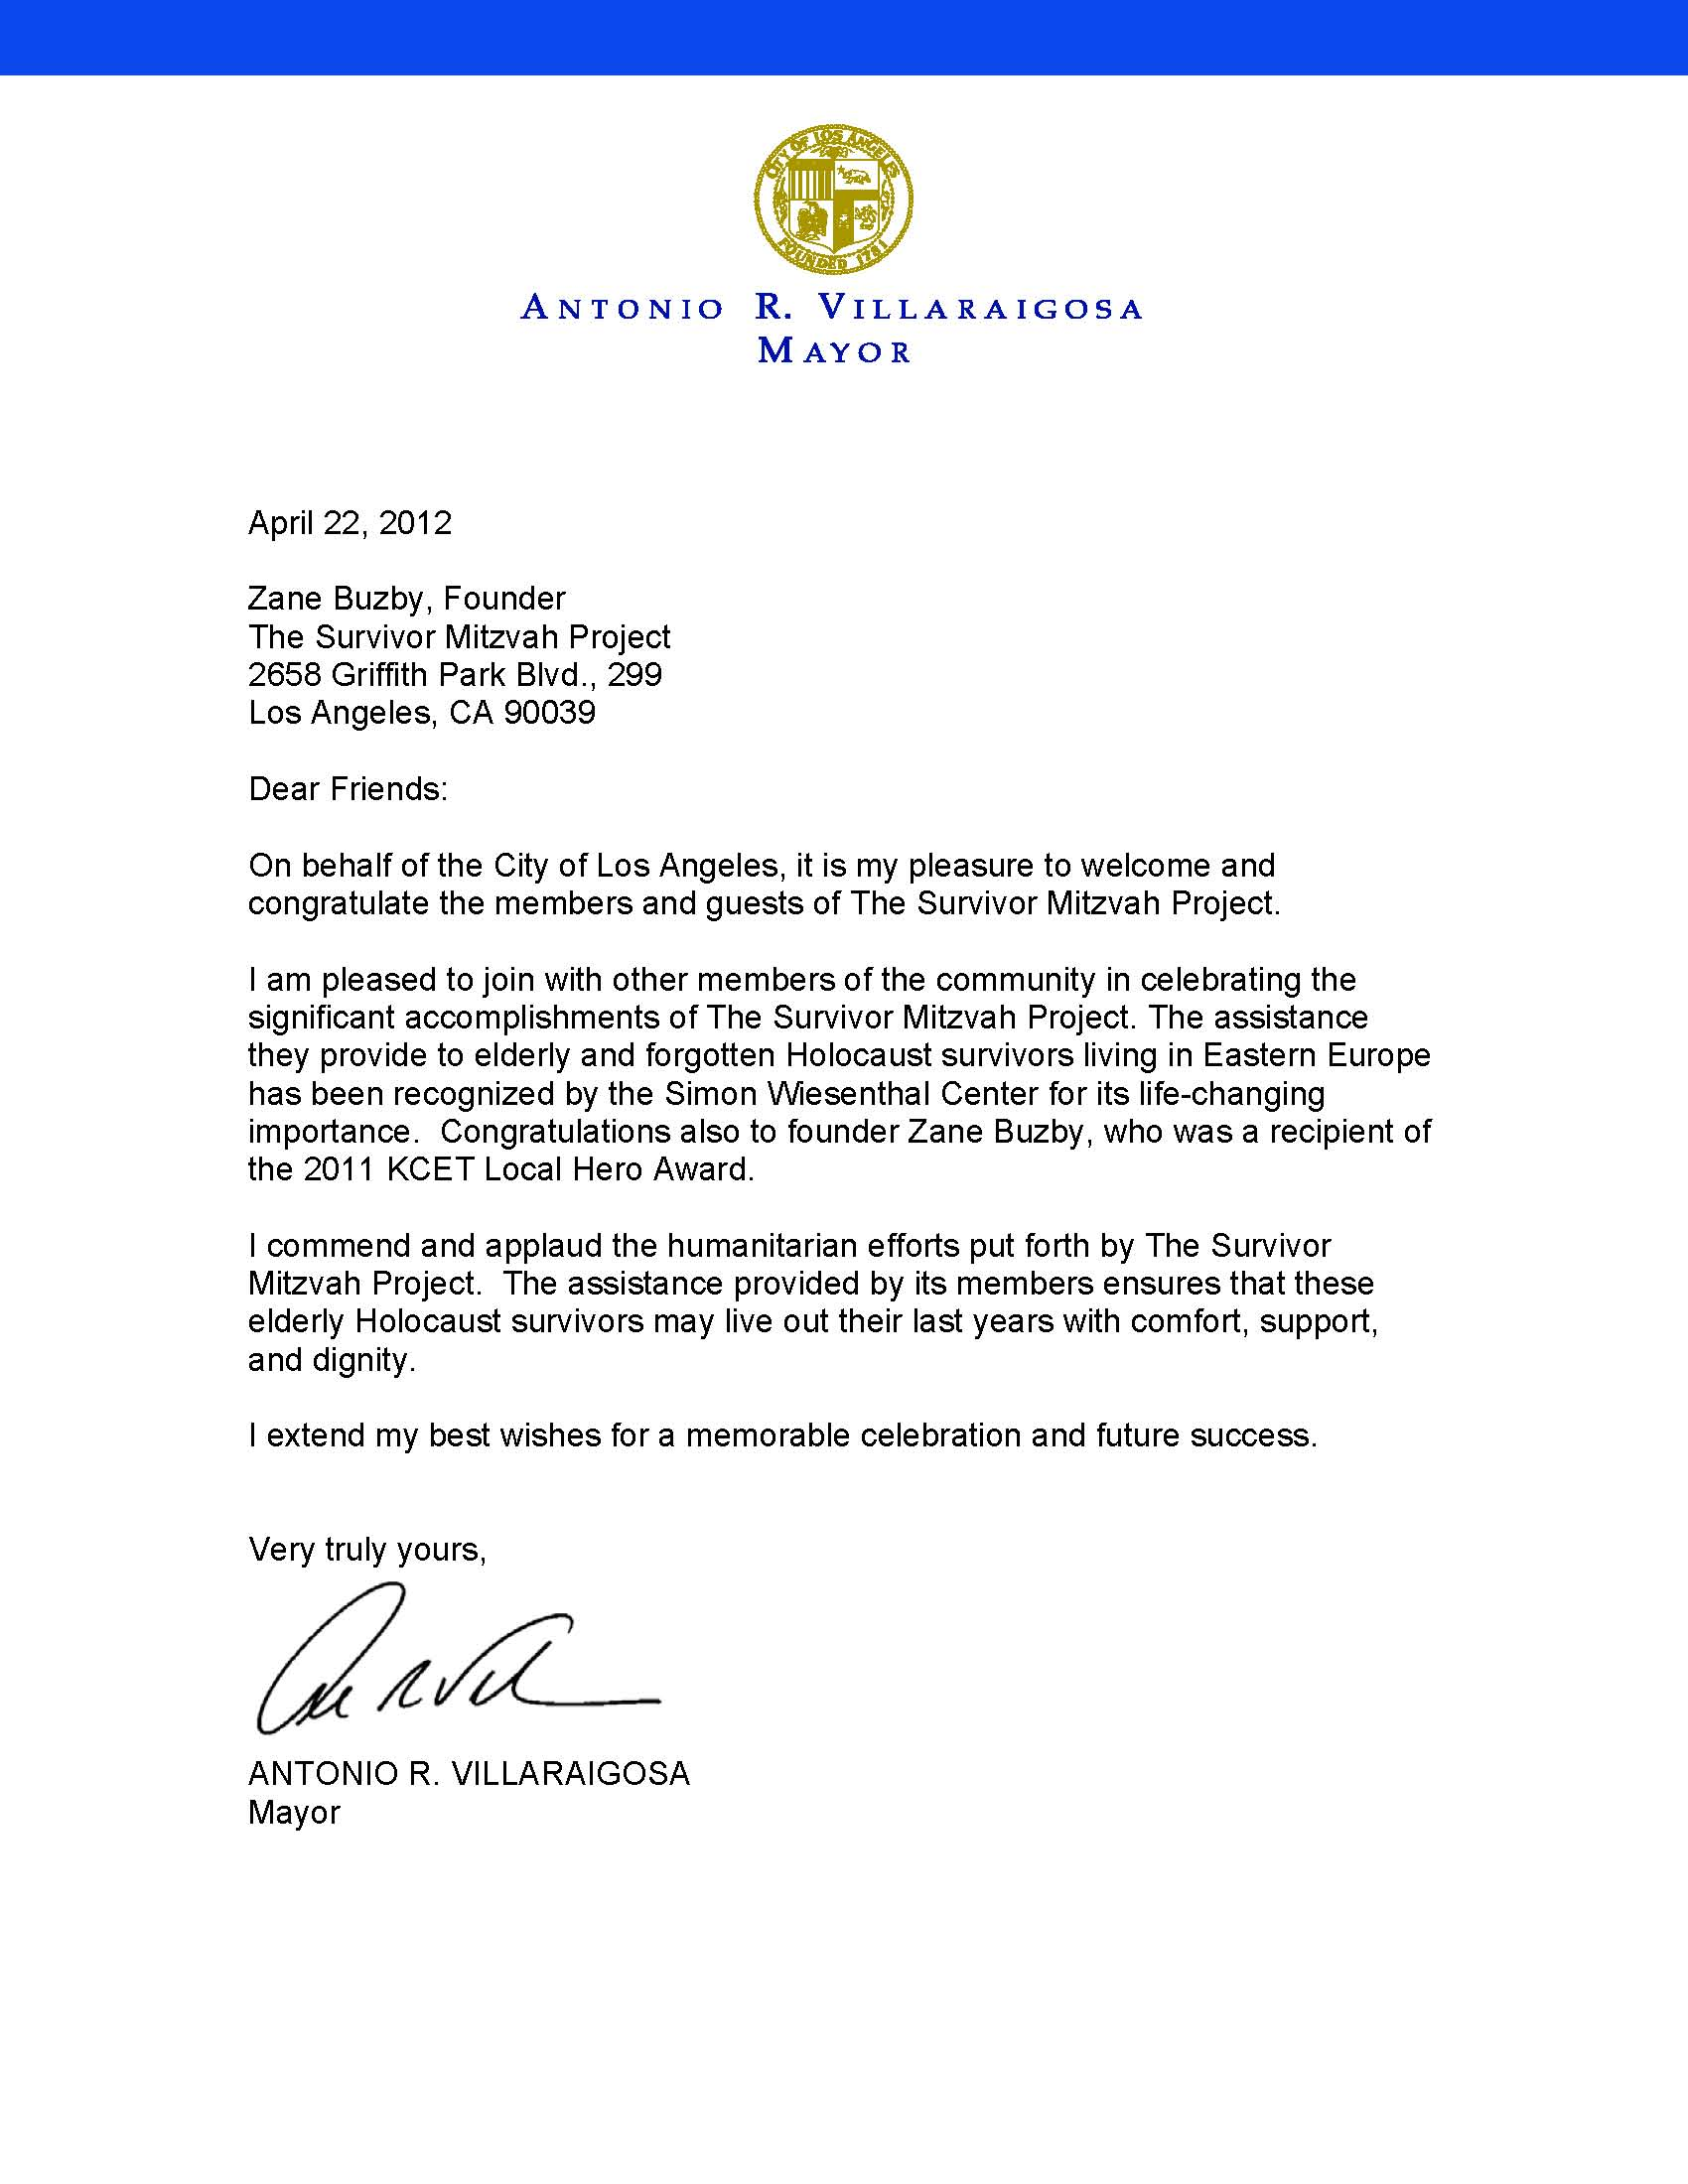 Letter from Mayor Villaraigosa